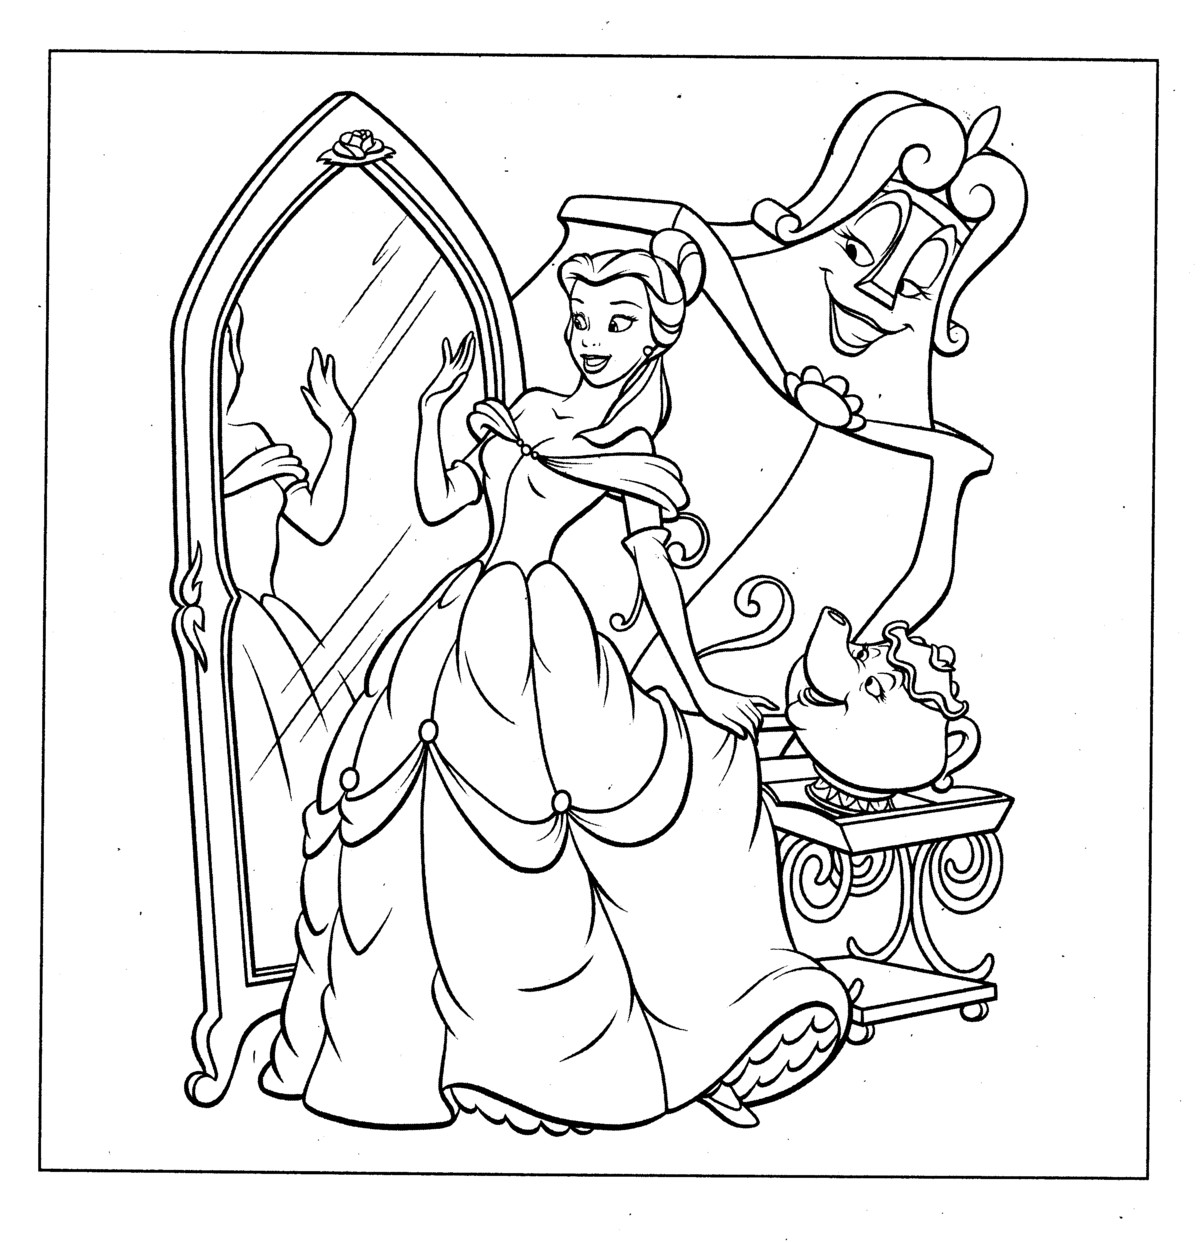 Disney Princess Belle Coloring Pages To Kids | coloring pages for disney princesses